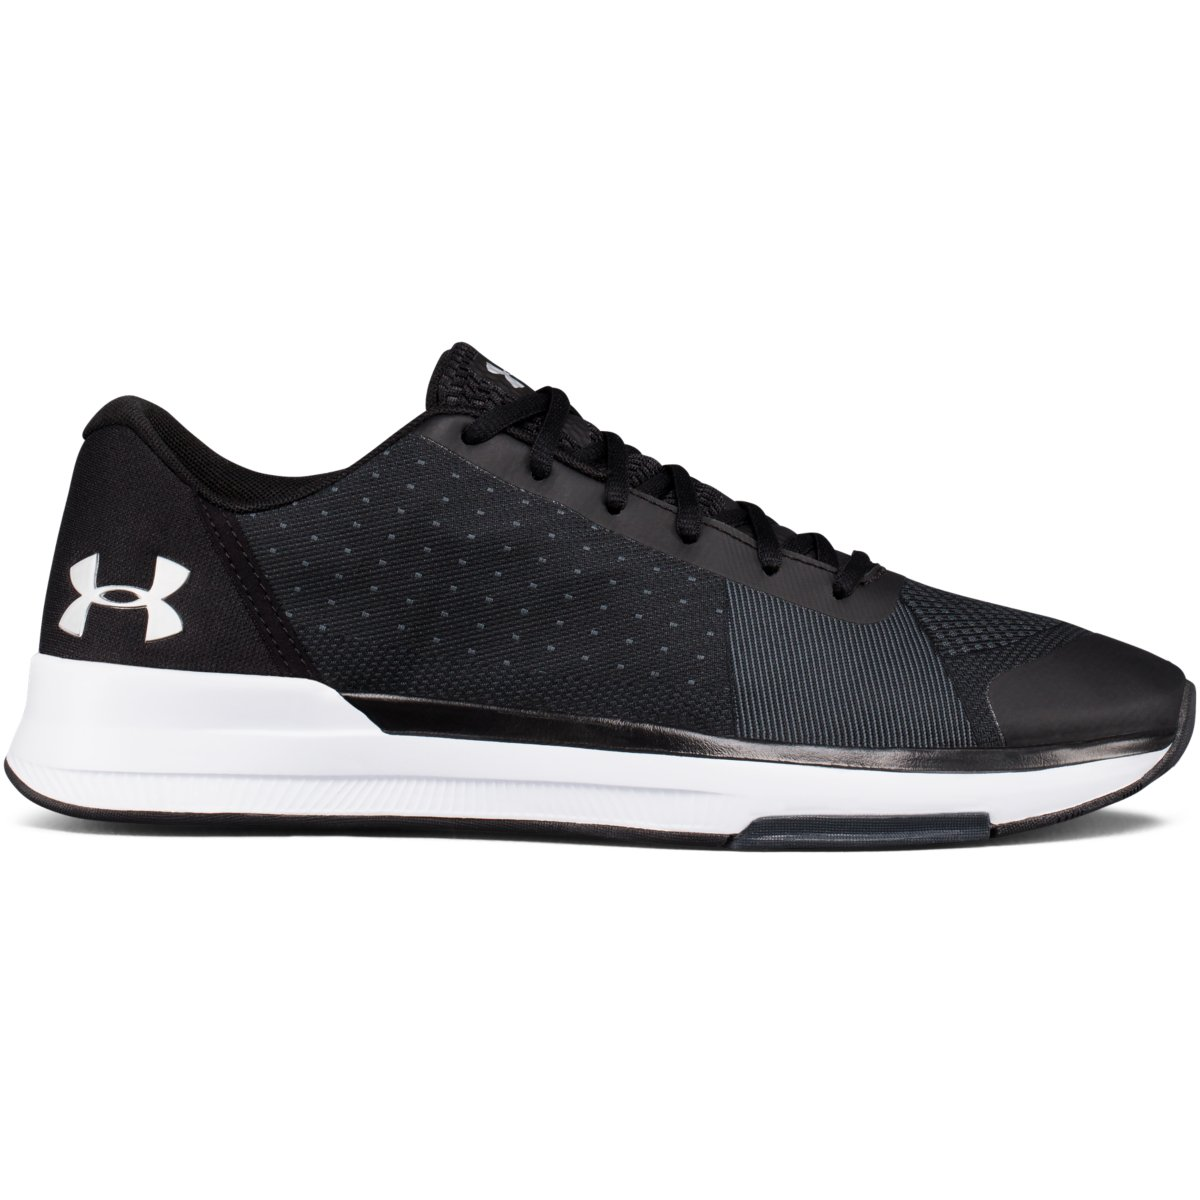 armor tennis shoes